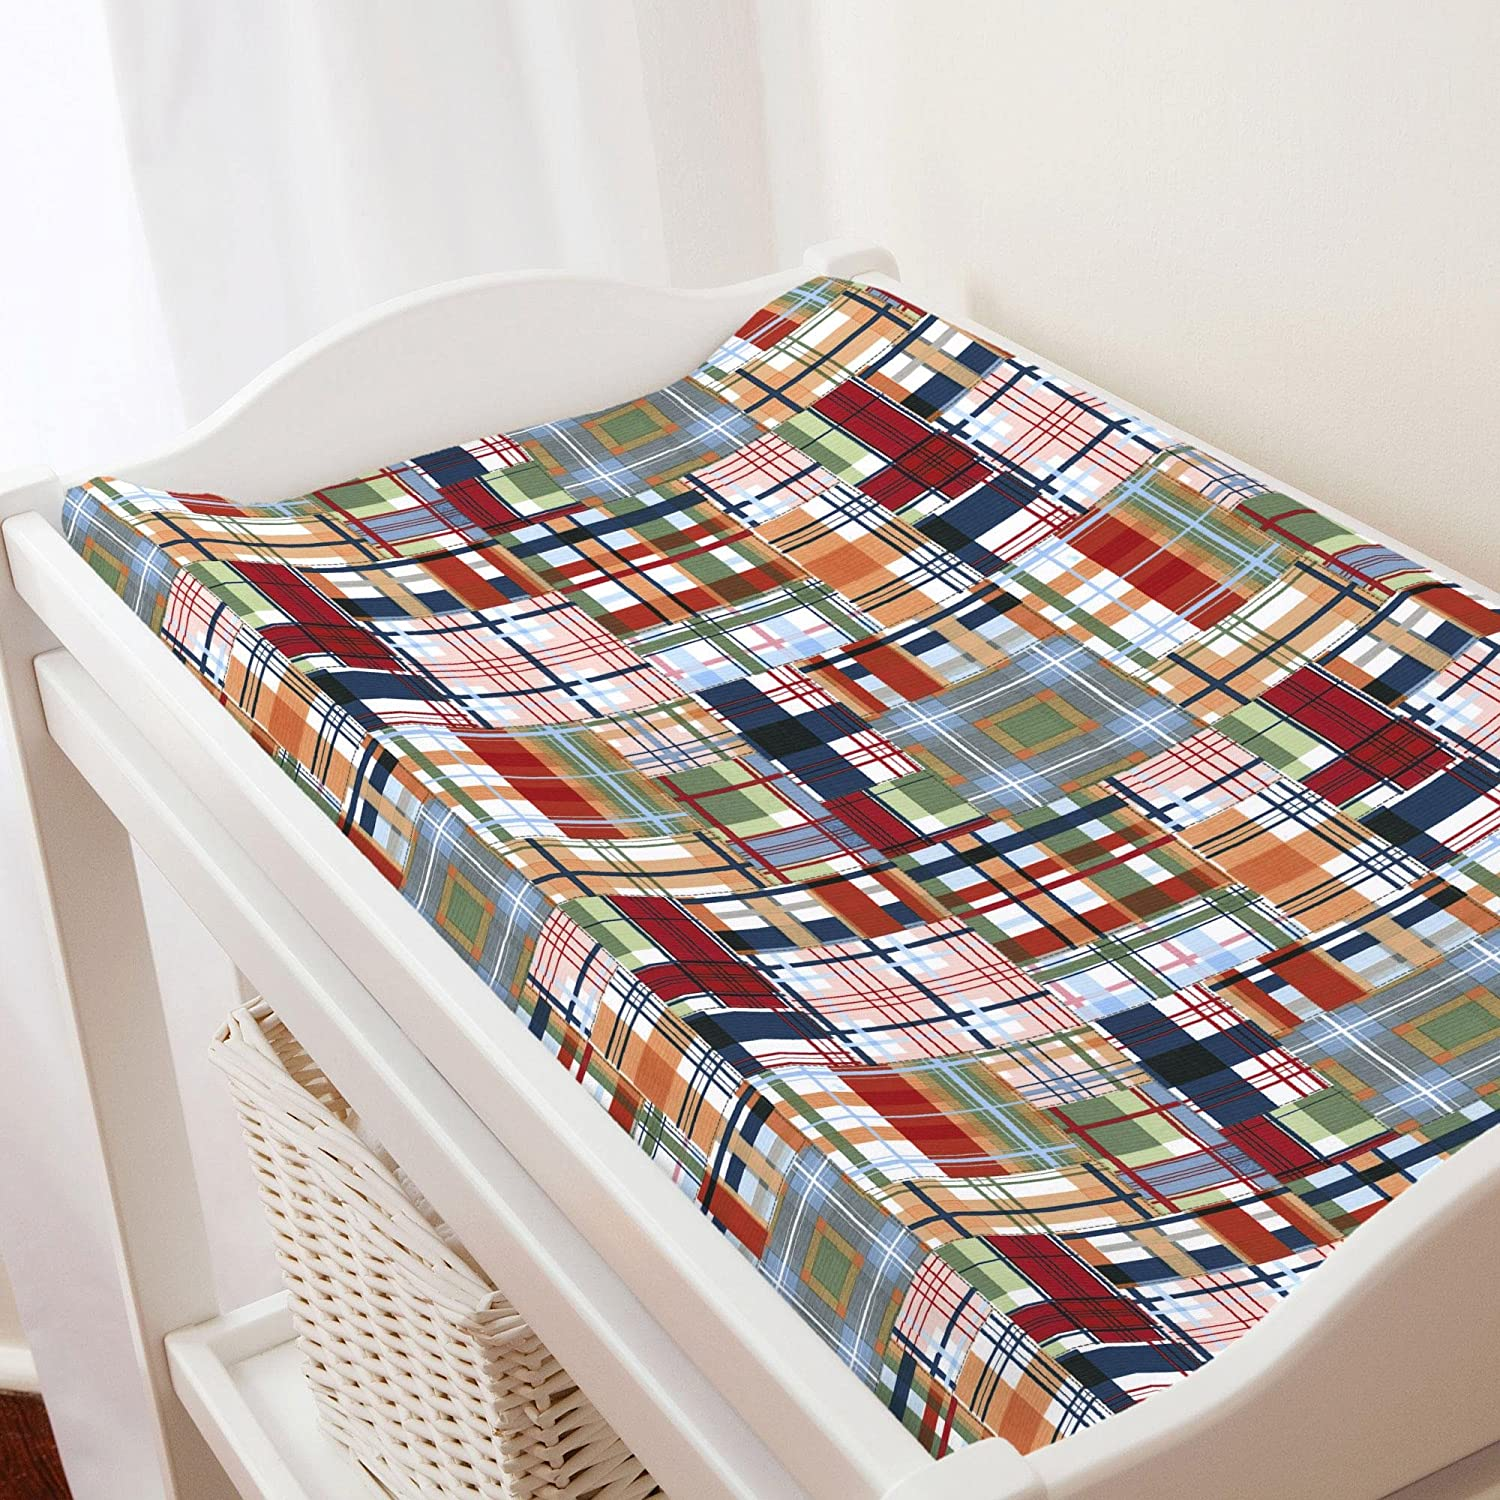 Carousel Designs Patchwork Plaid Changing Pad Cover by Carousel Designs   B00L88VJXK